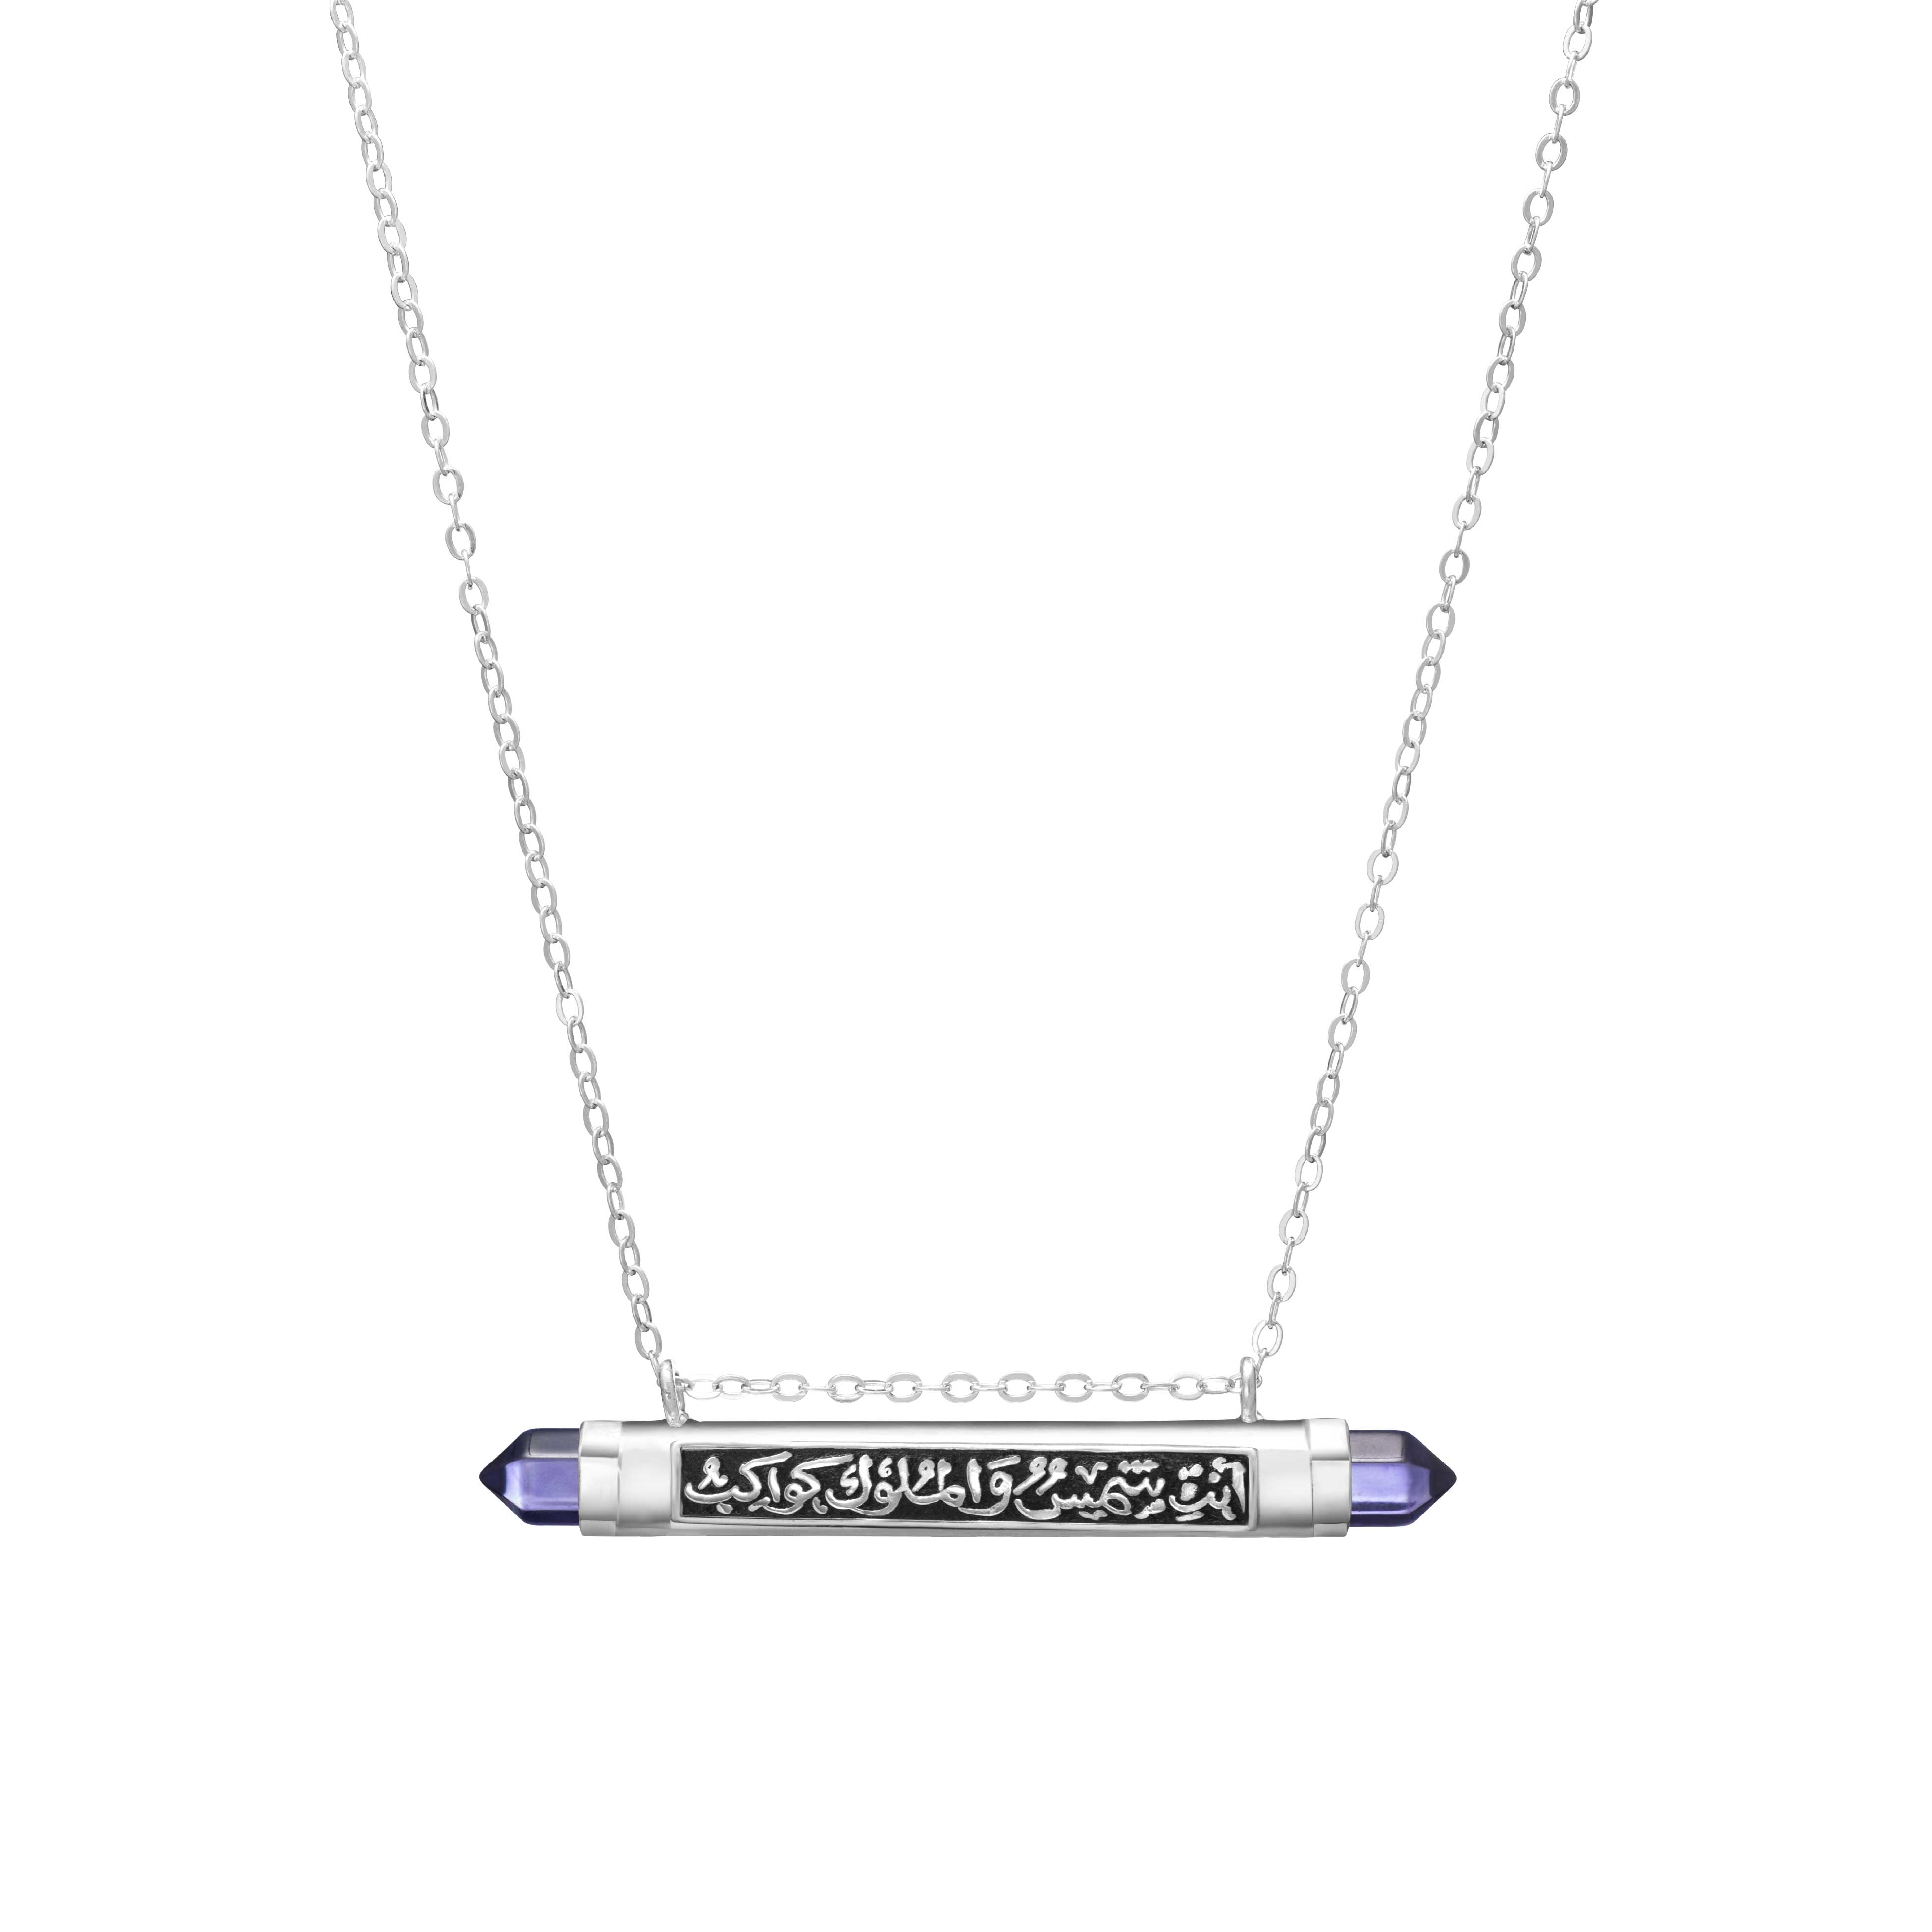 COSMIC RAY NECKLACE